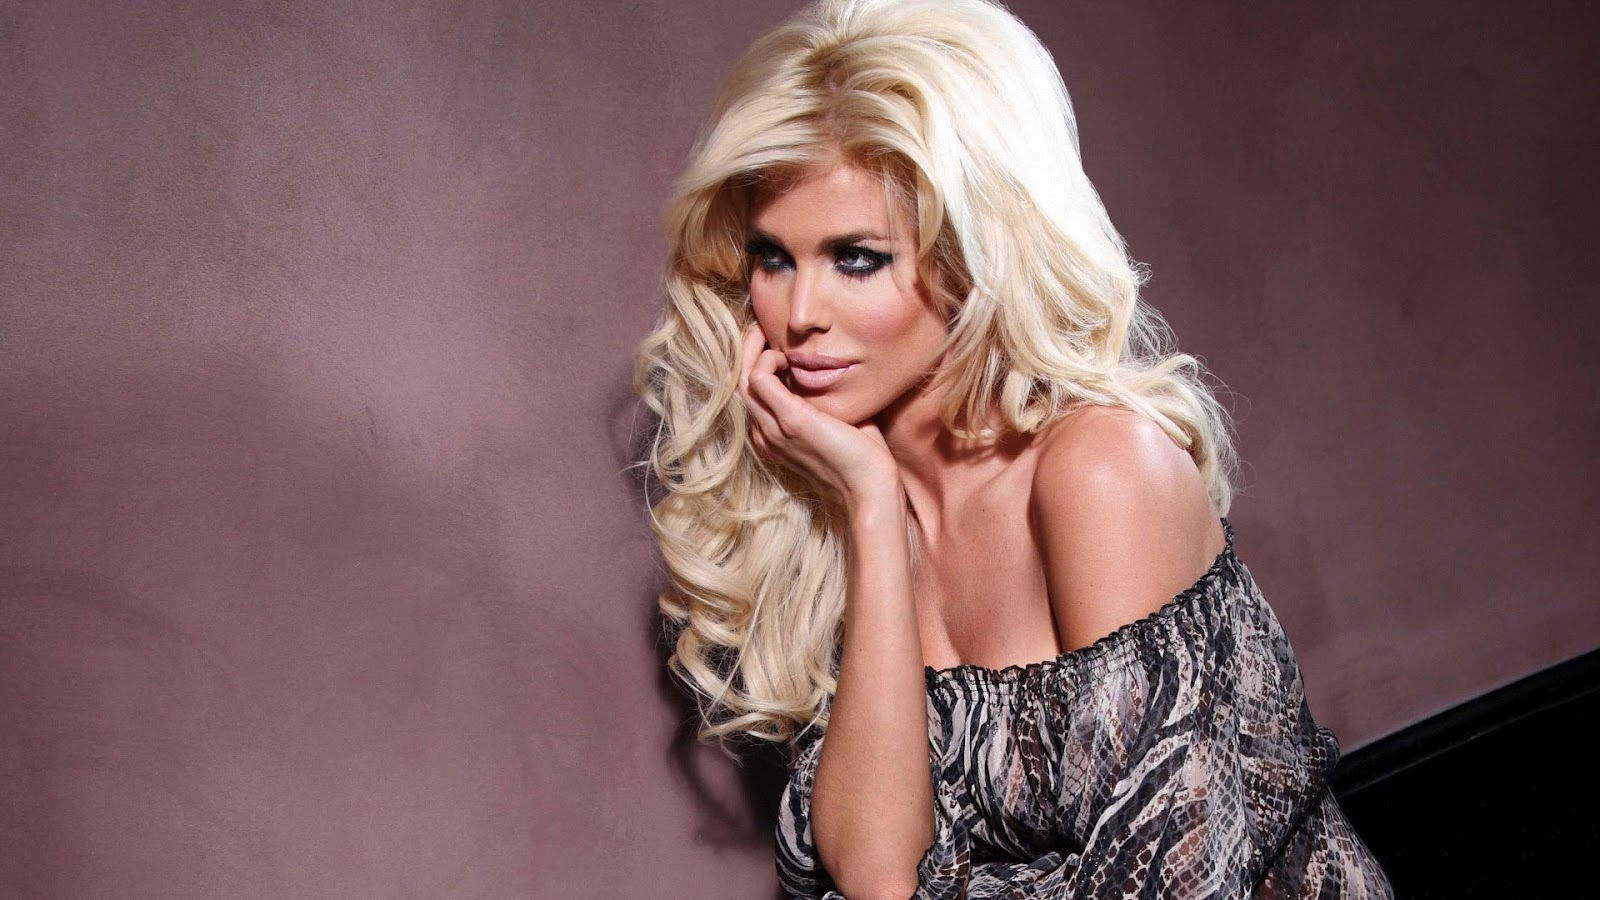 Victoria Silvstedt Hot Wallpapers | Amazing HD Wallpapers